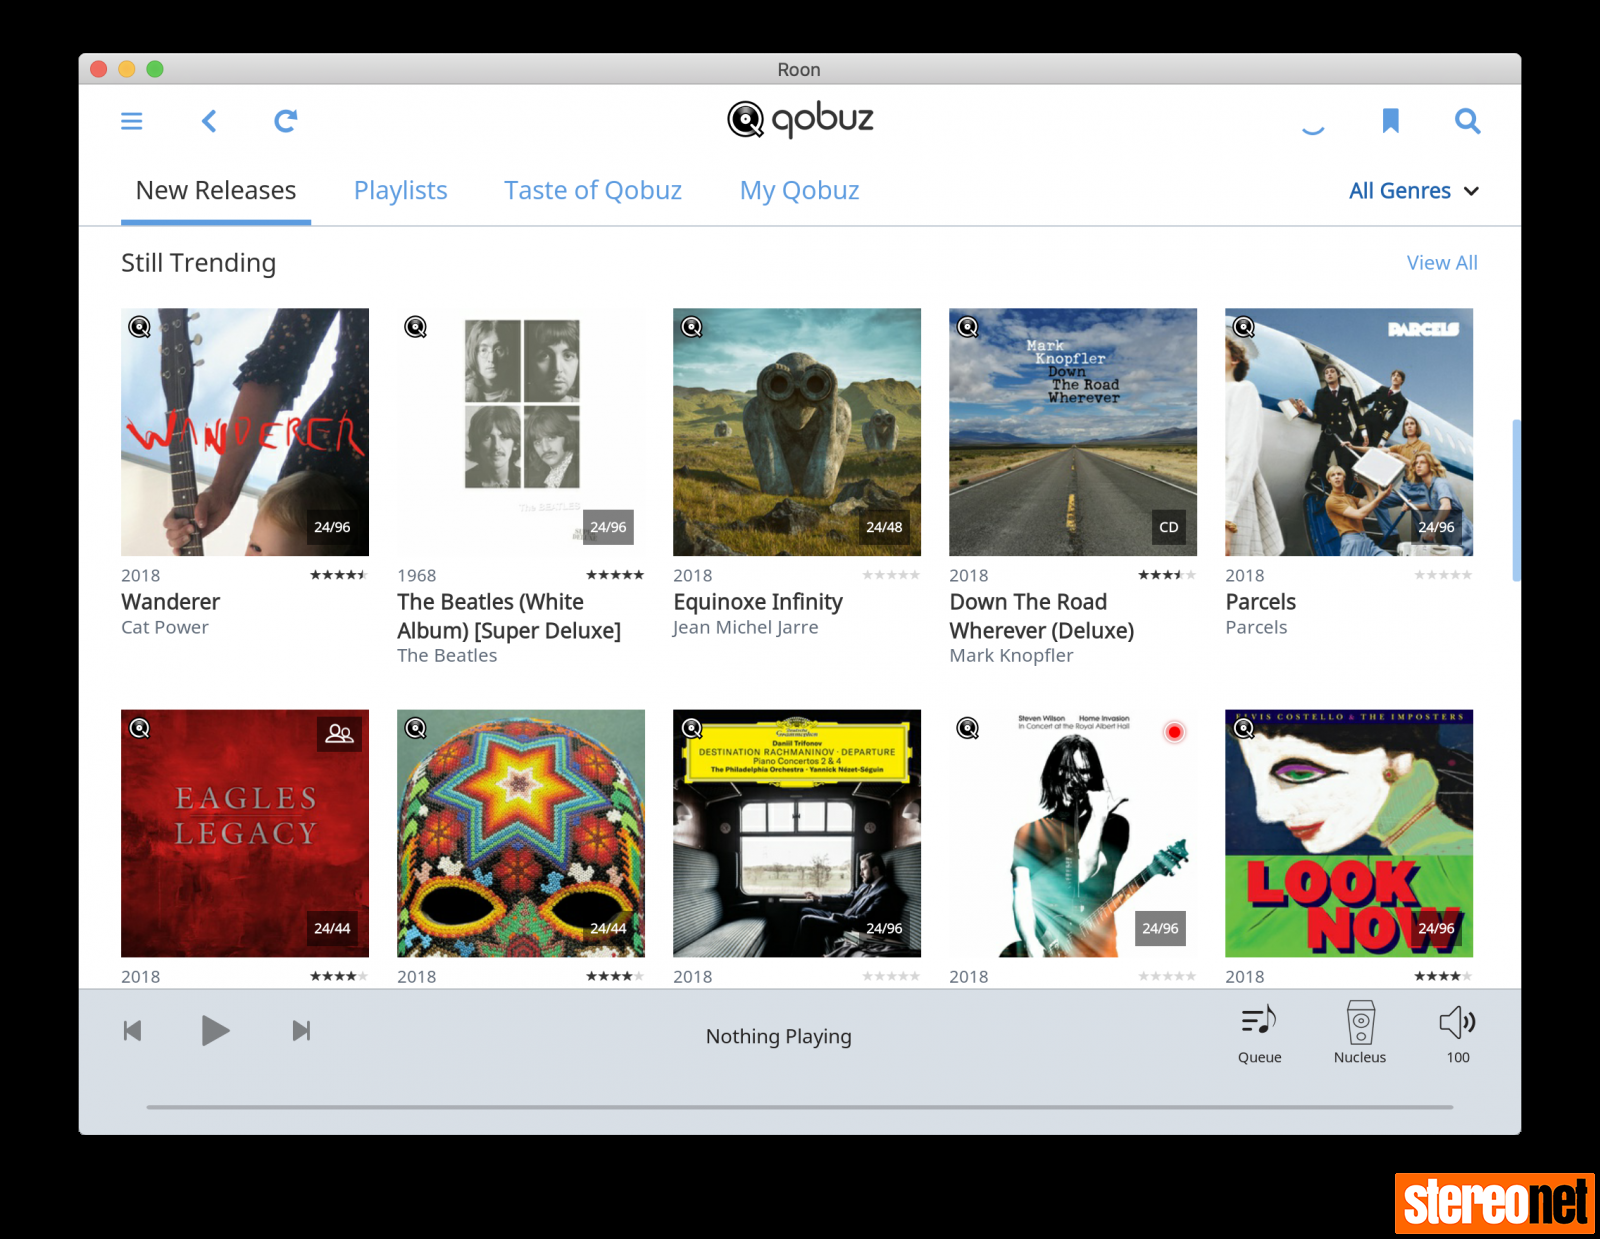 Roon 1 6 Adds Qobuz Streaming and New Roon Radio in the New Look